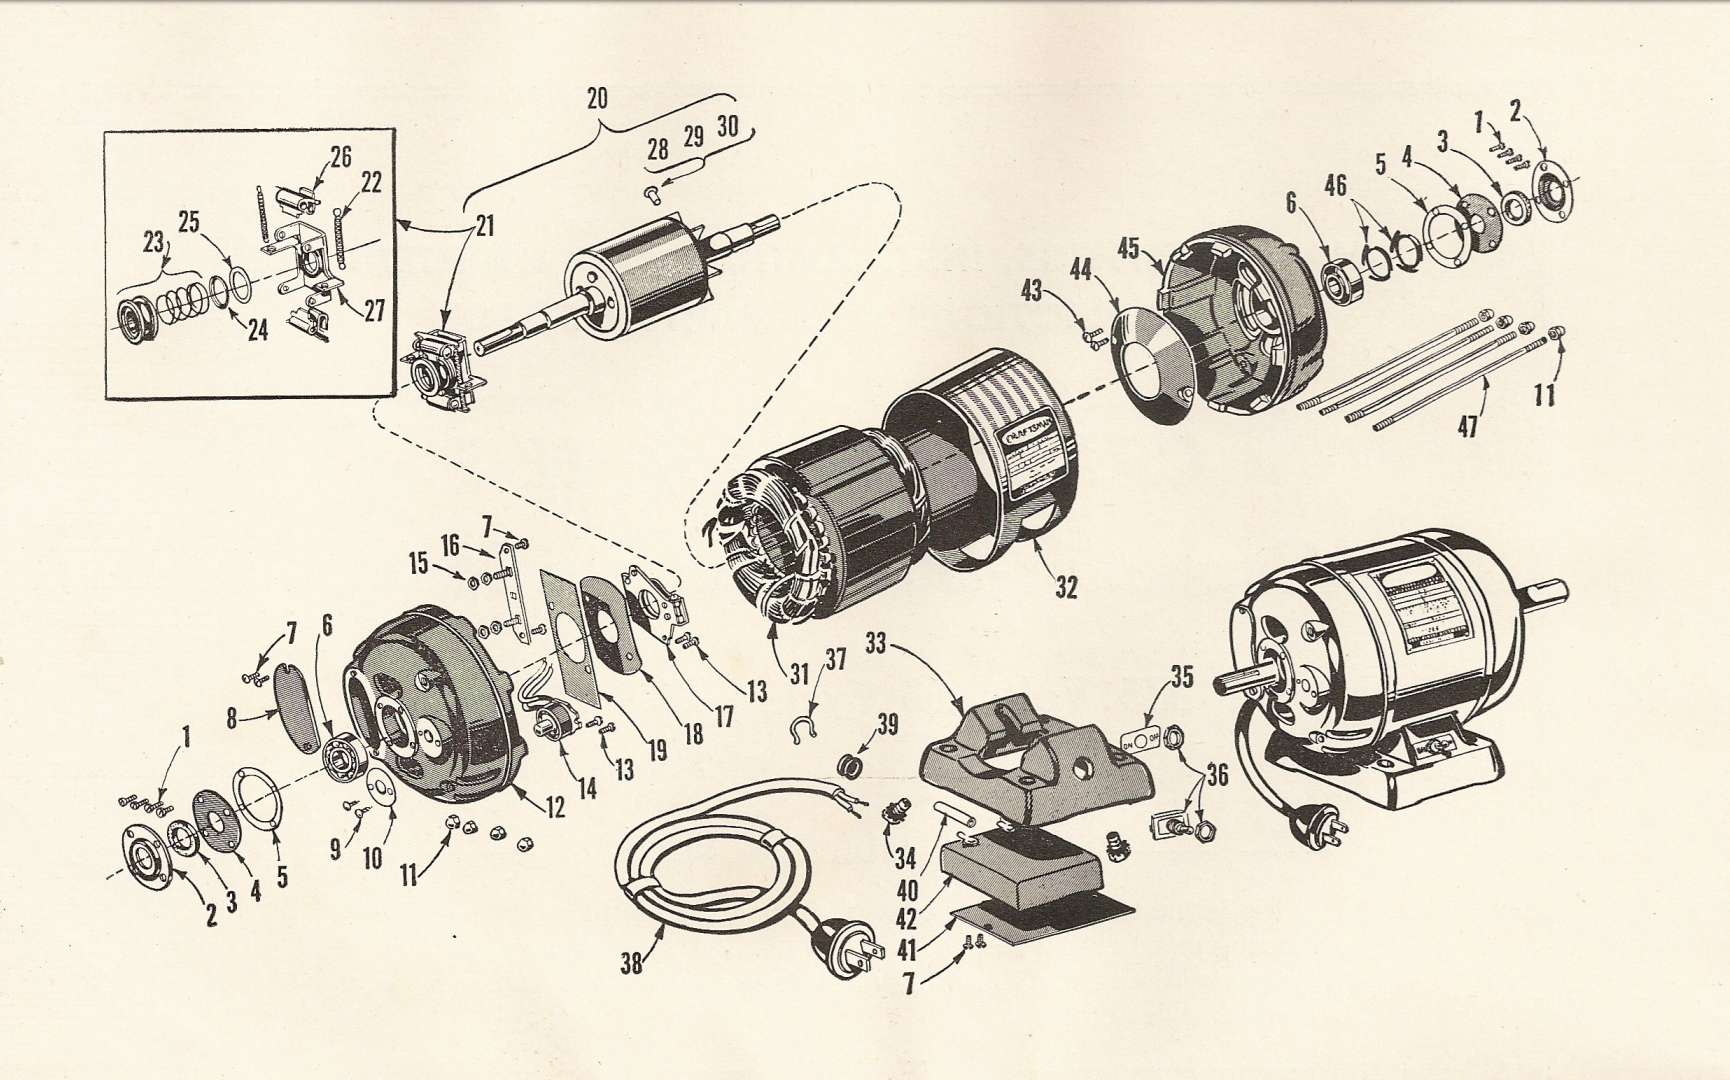 Craftsman 1156962 Motor Restoration Part 2 Michael Parrish Blog Electric Diagram 1 Hp Capacitor Start Source